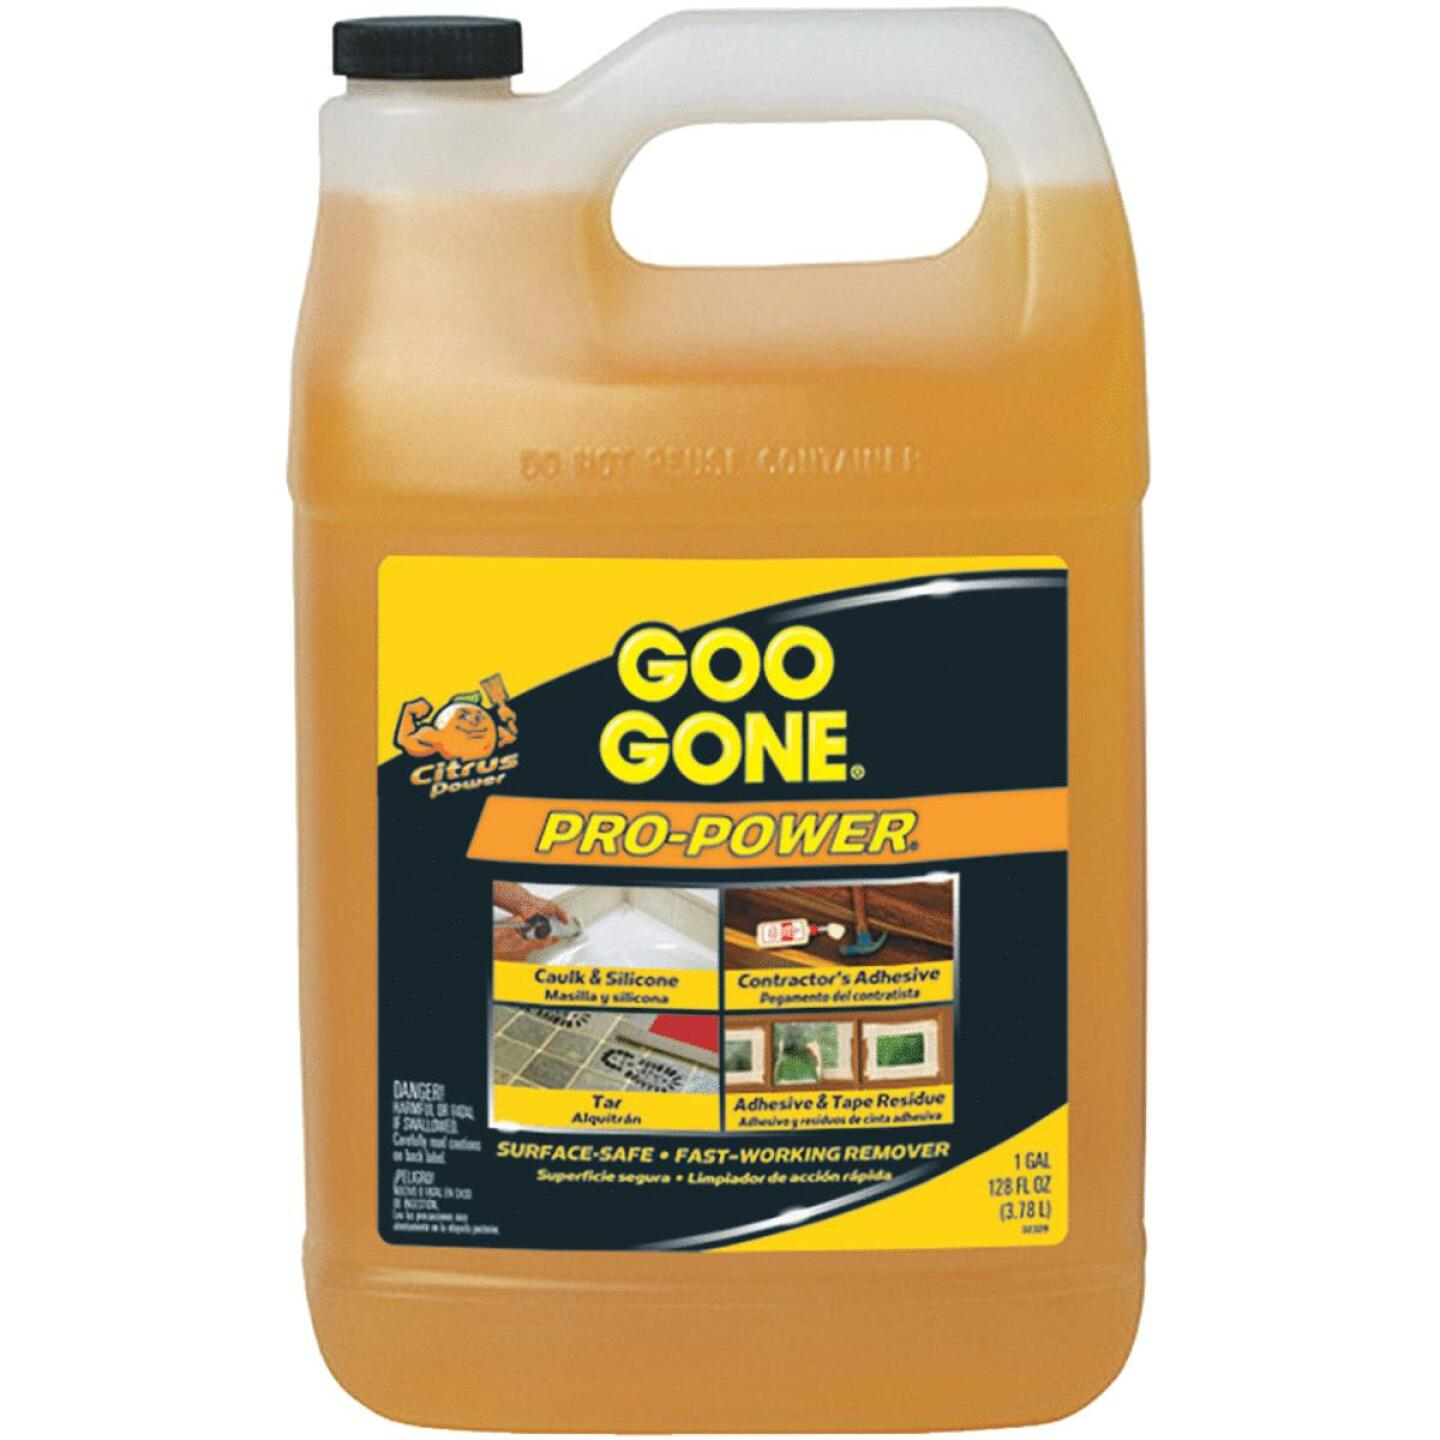 Goo Gone 1 Gal. Pro-Power Adhesive Remover Image 306